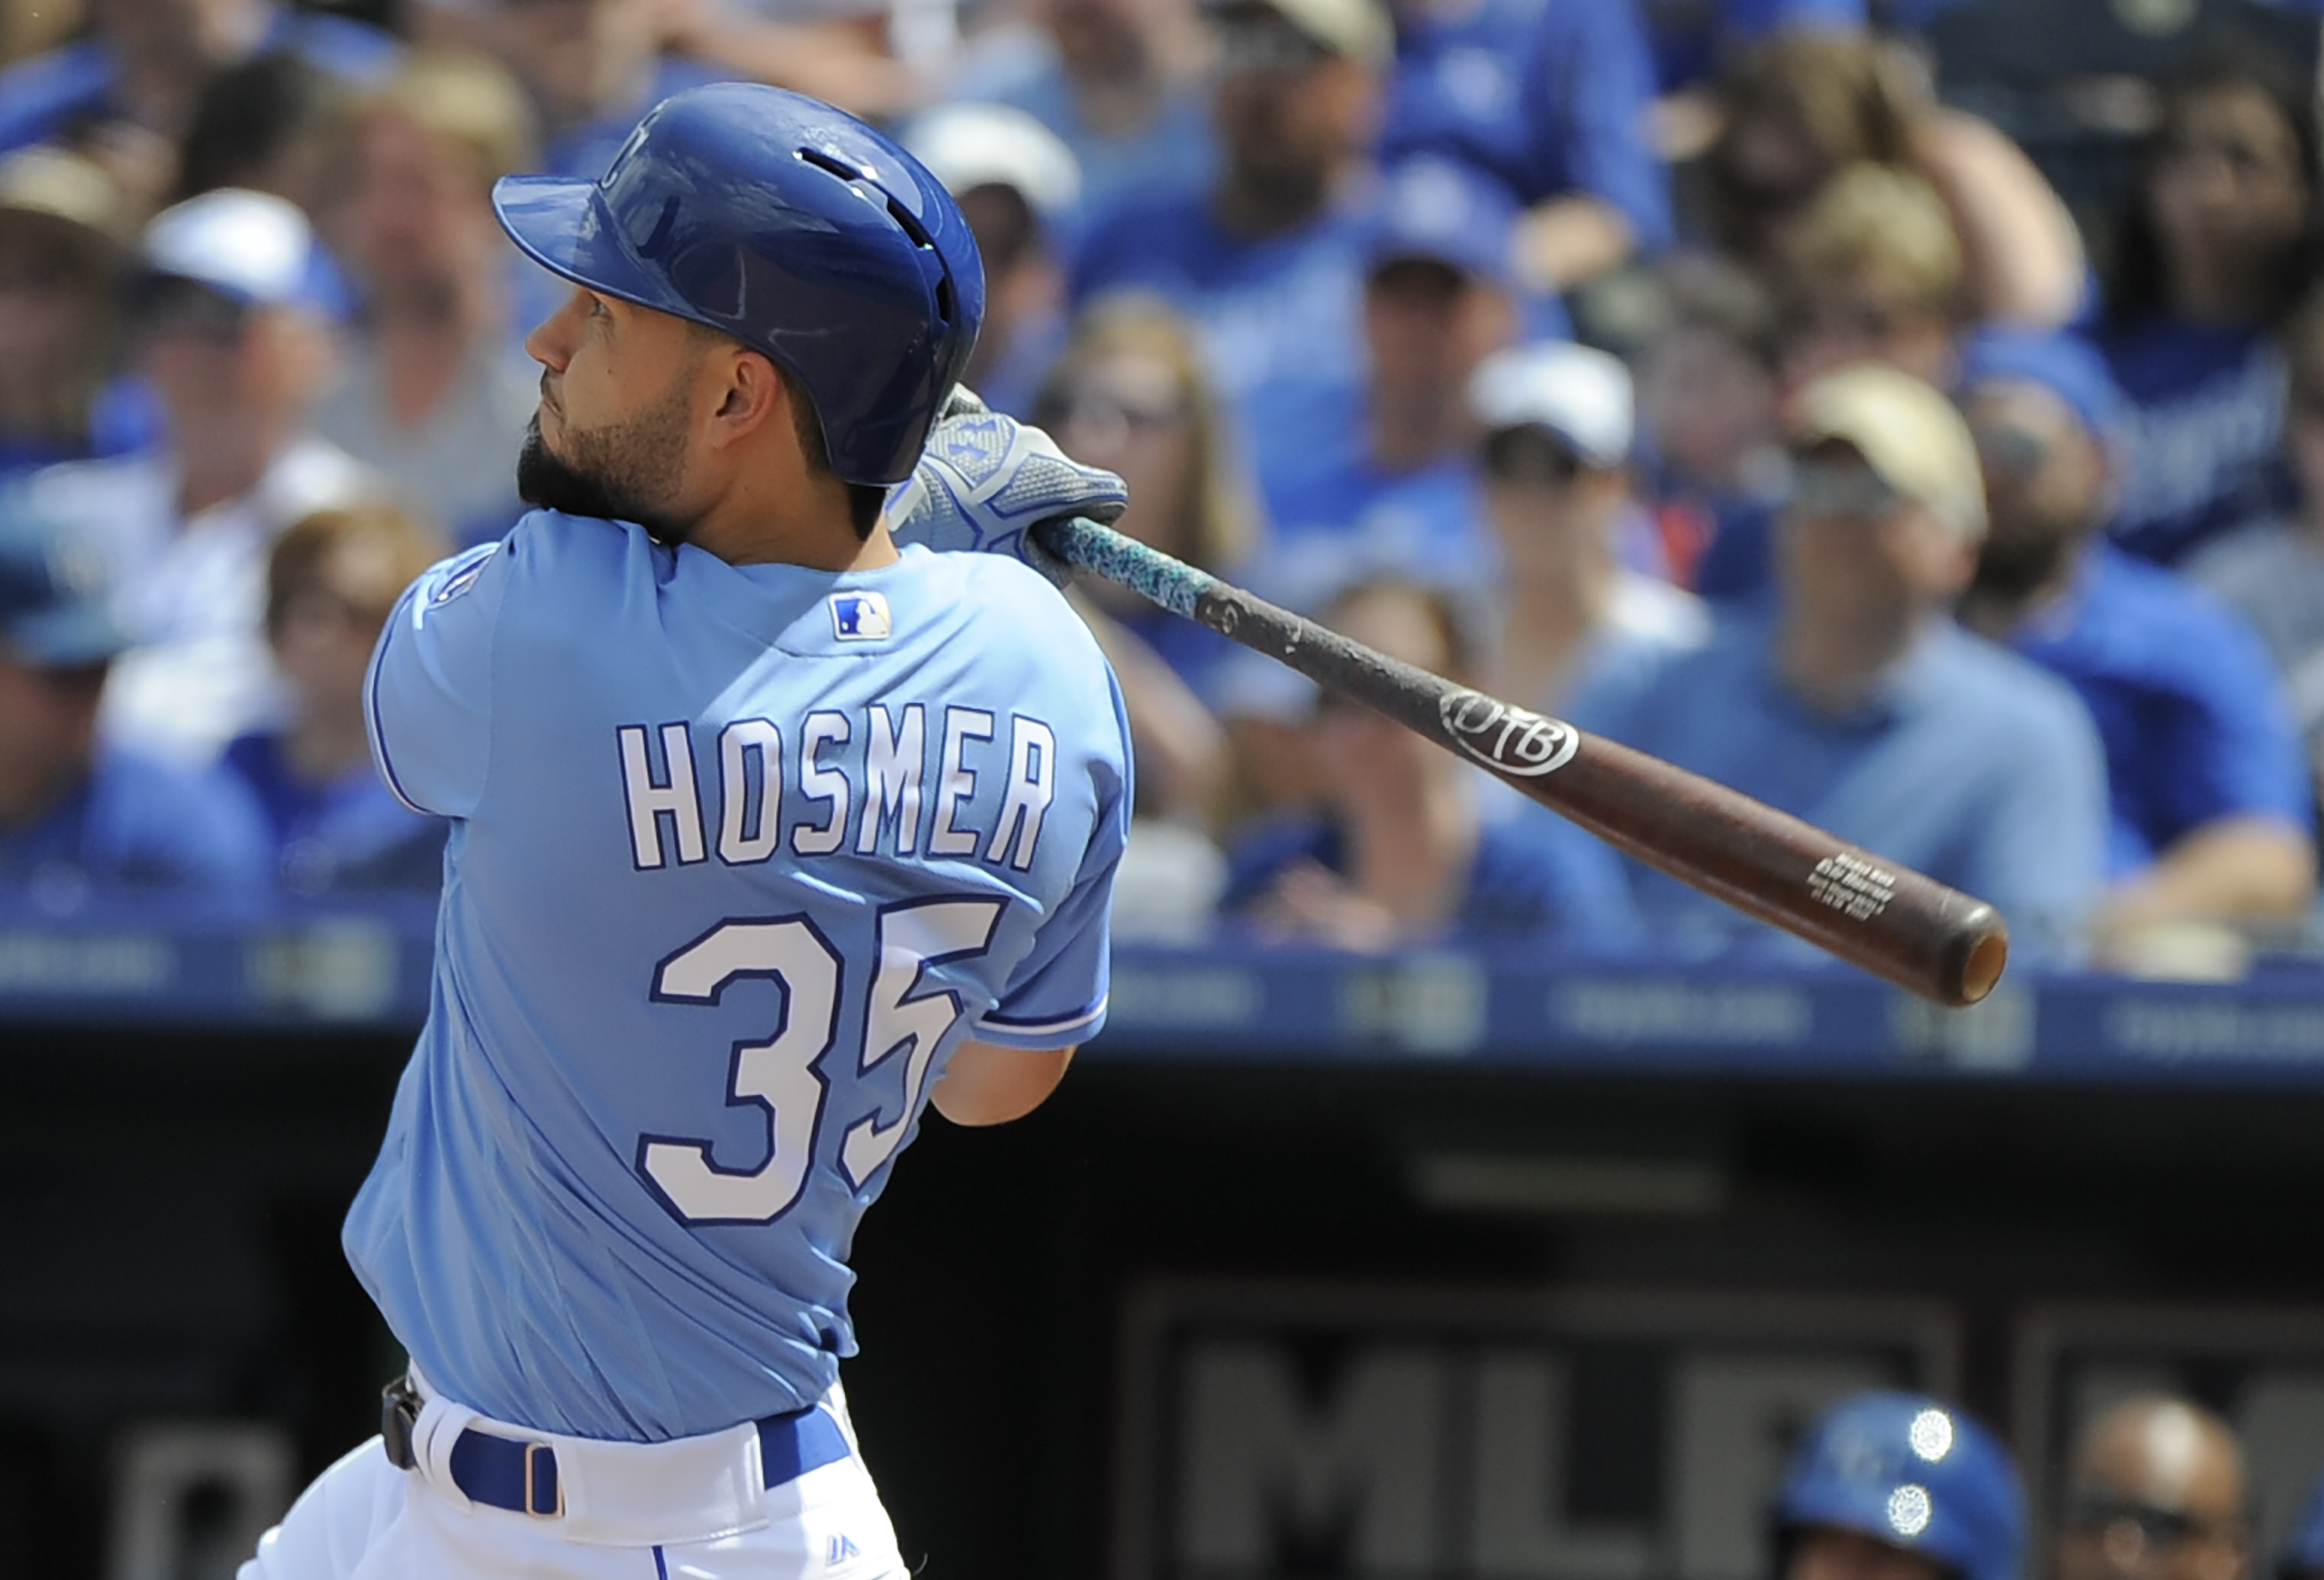 KANSAS CITY, MO - APRIL 24:  Eric Hosmer #35 of the Kansas City Royals hits a home run in the sixth inning against the Baltimore Orioles at Kauffman Stadium on April 24, 2016 in Kansas City, Missouri. (Photo by Ed Zurga/Getty Images)